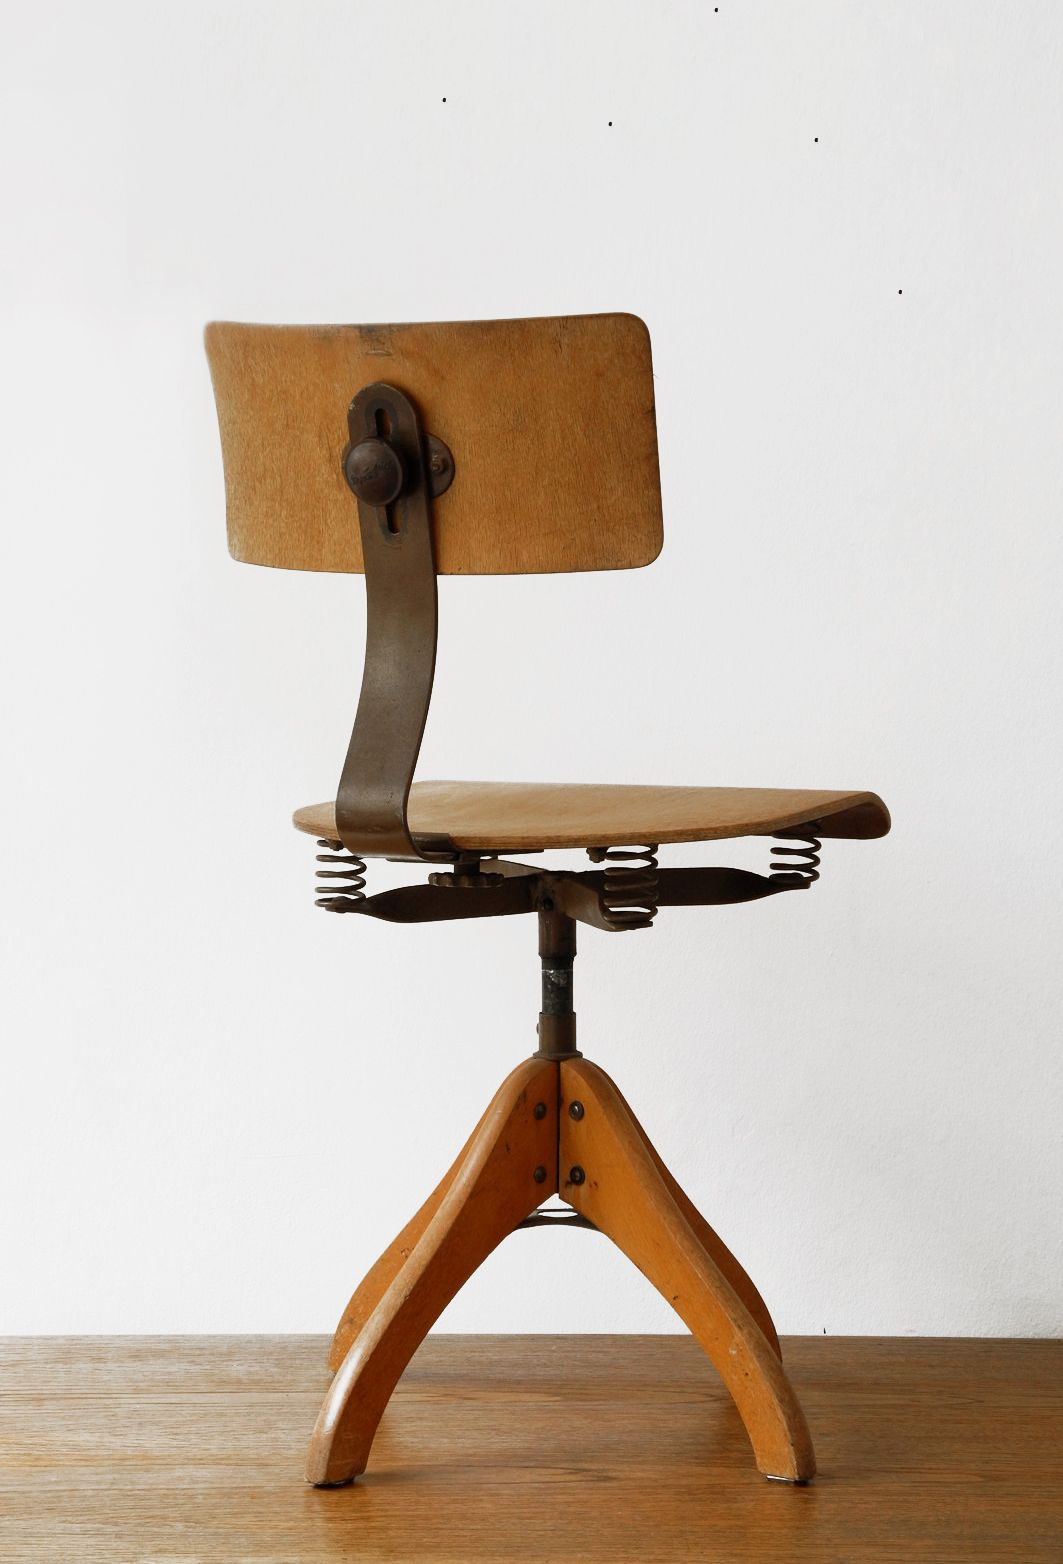 Polstergleich Wooden Architects Swivel Chair Sold By Retroraum On Etsy Office Chair Design Vintage Office Chair Chair Design